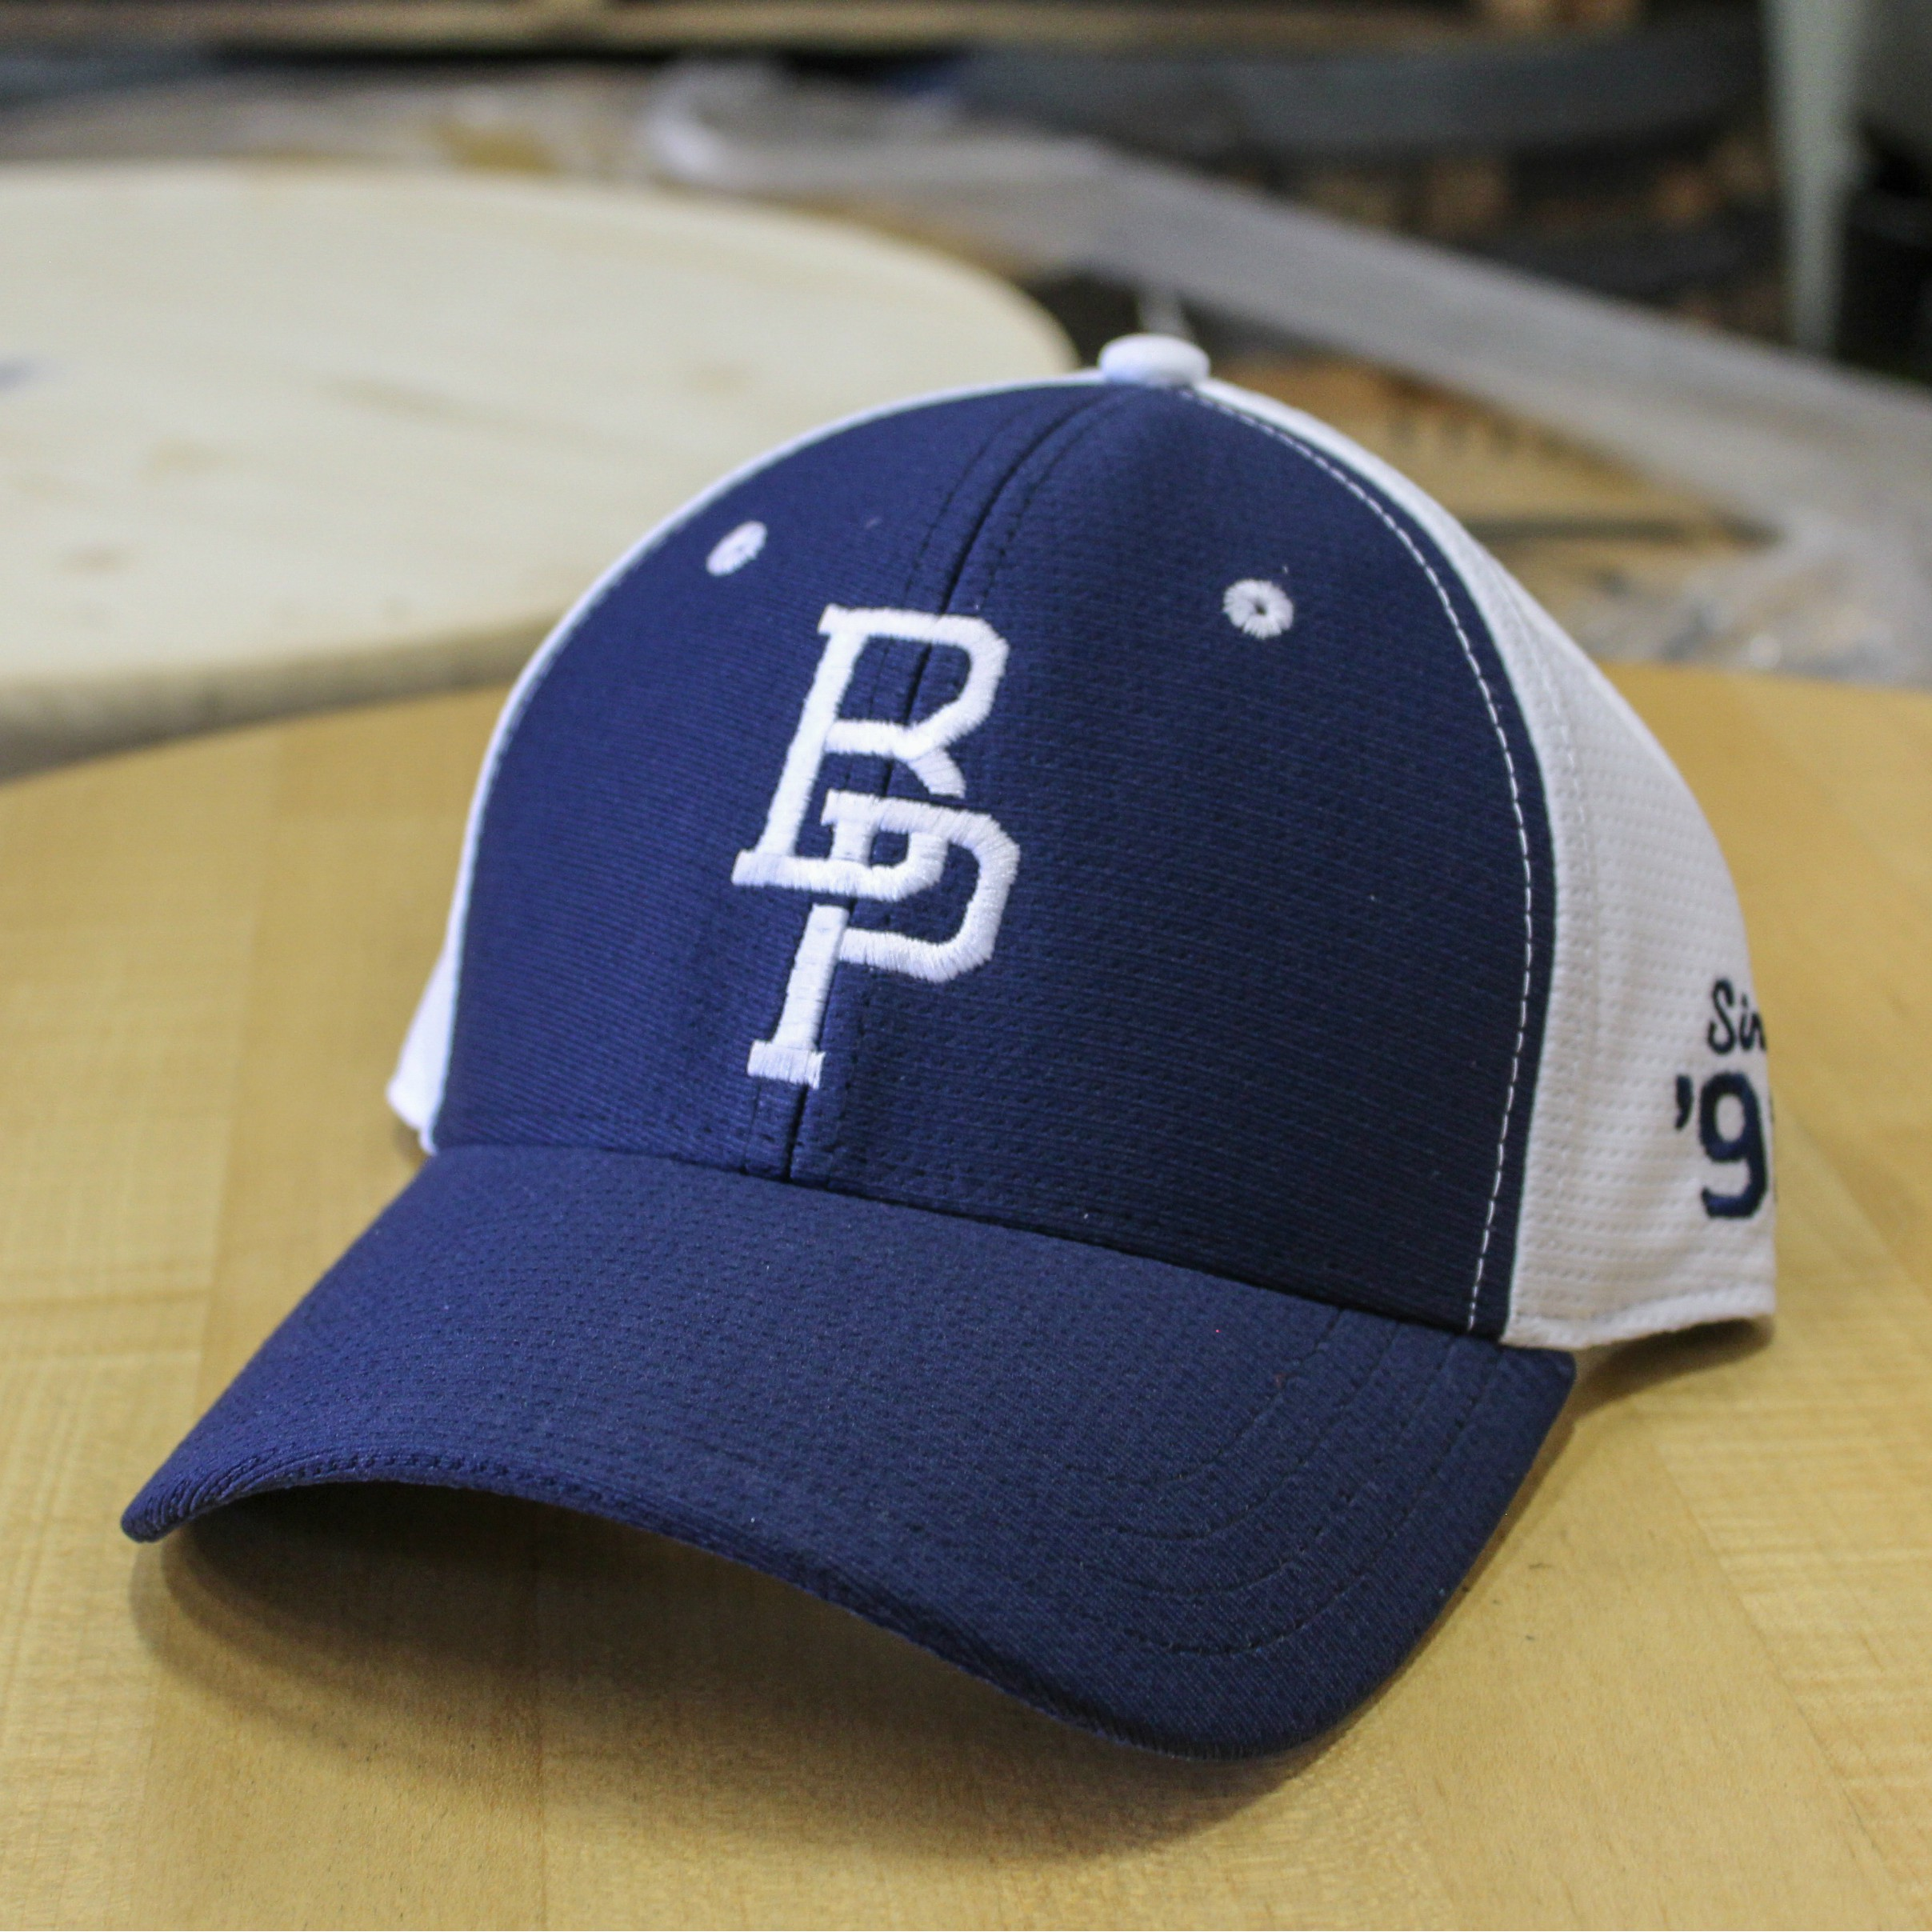 BP Navy and White Snapback